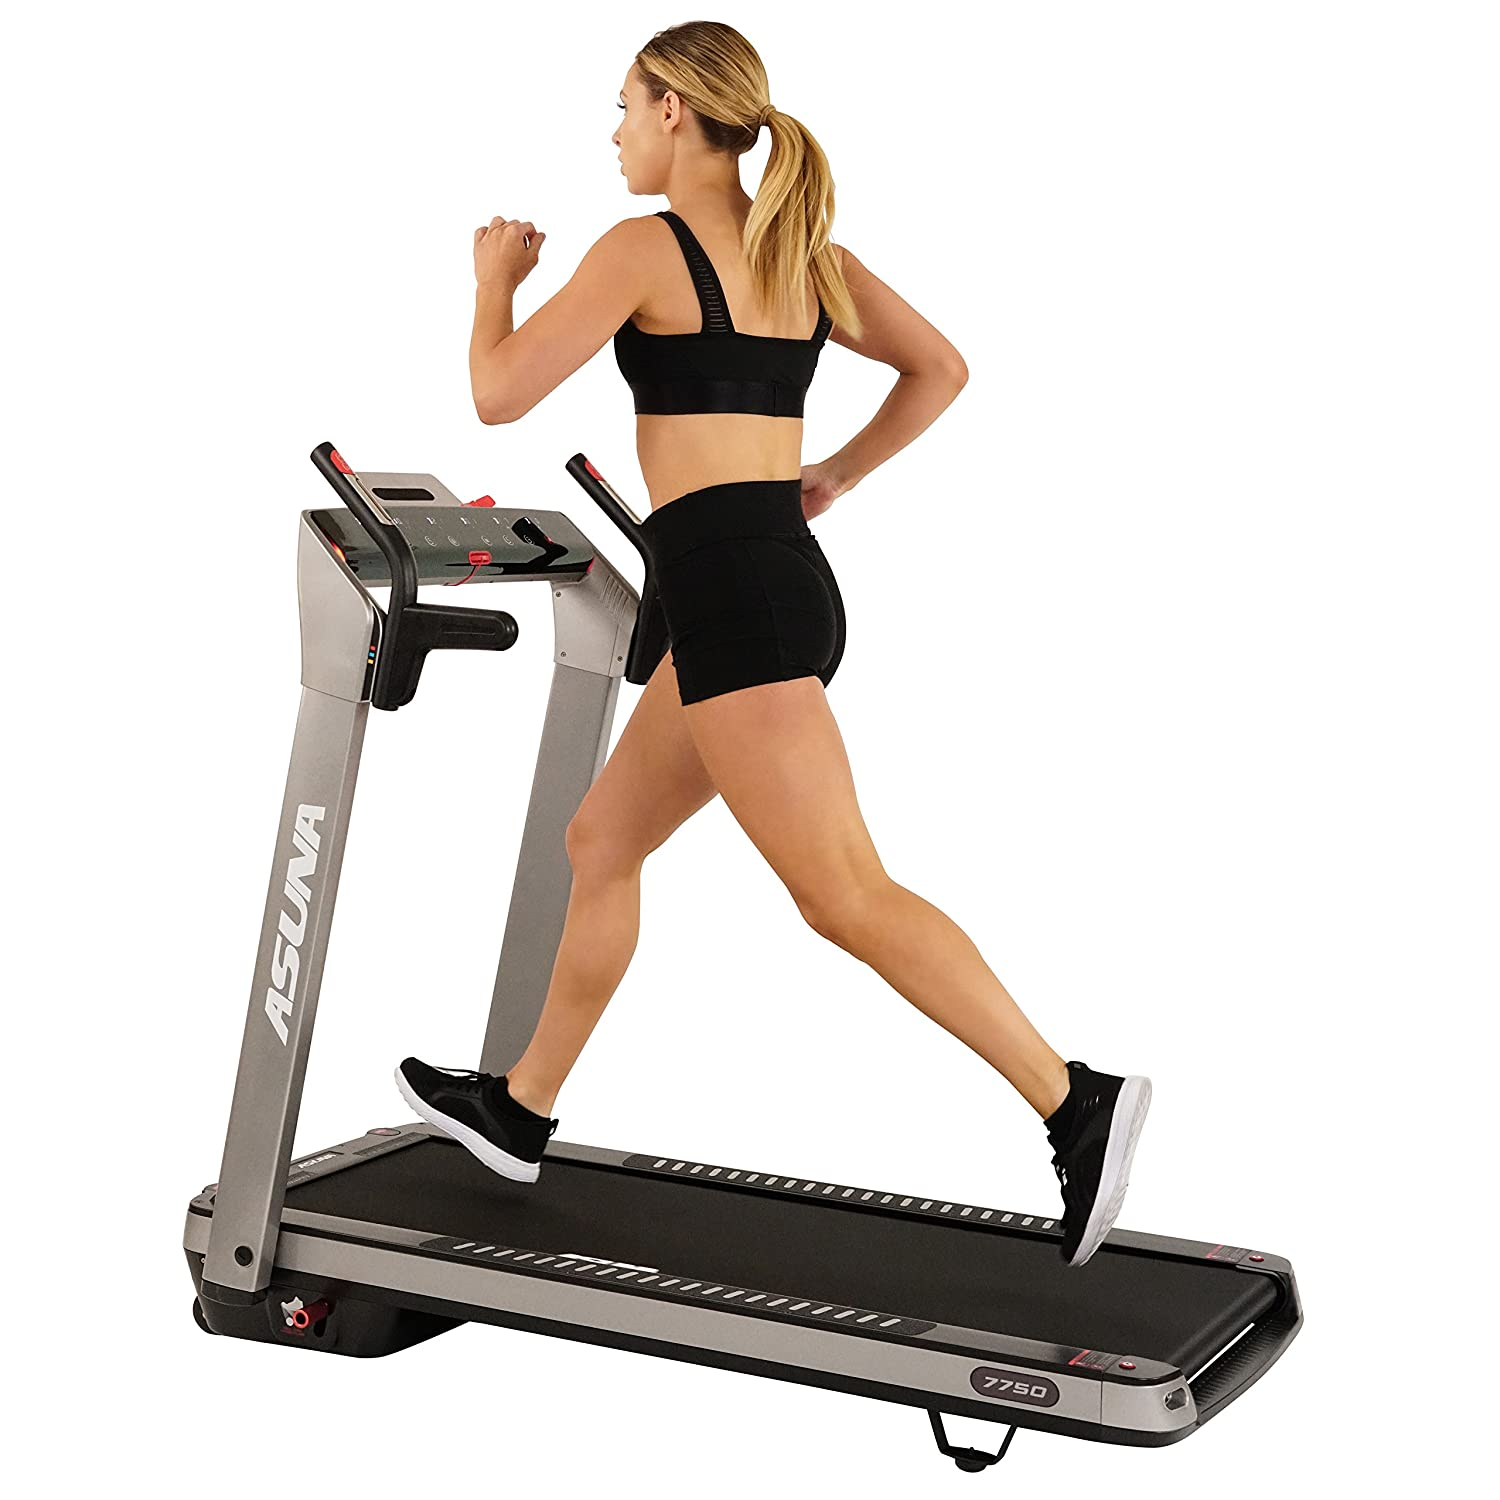 Sunny Health and Fitness ASUNA SpaceFlex - Best Compact Treadmill Machine Under $1000